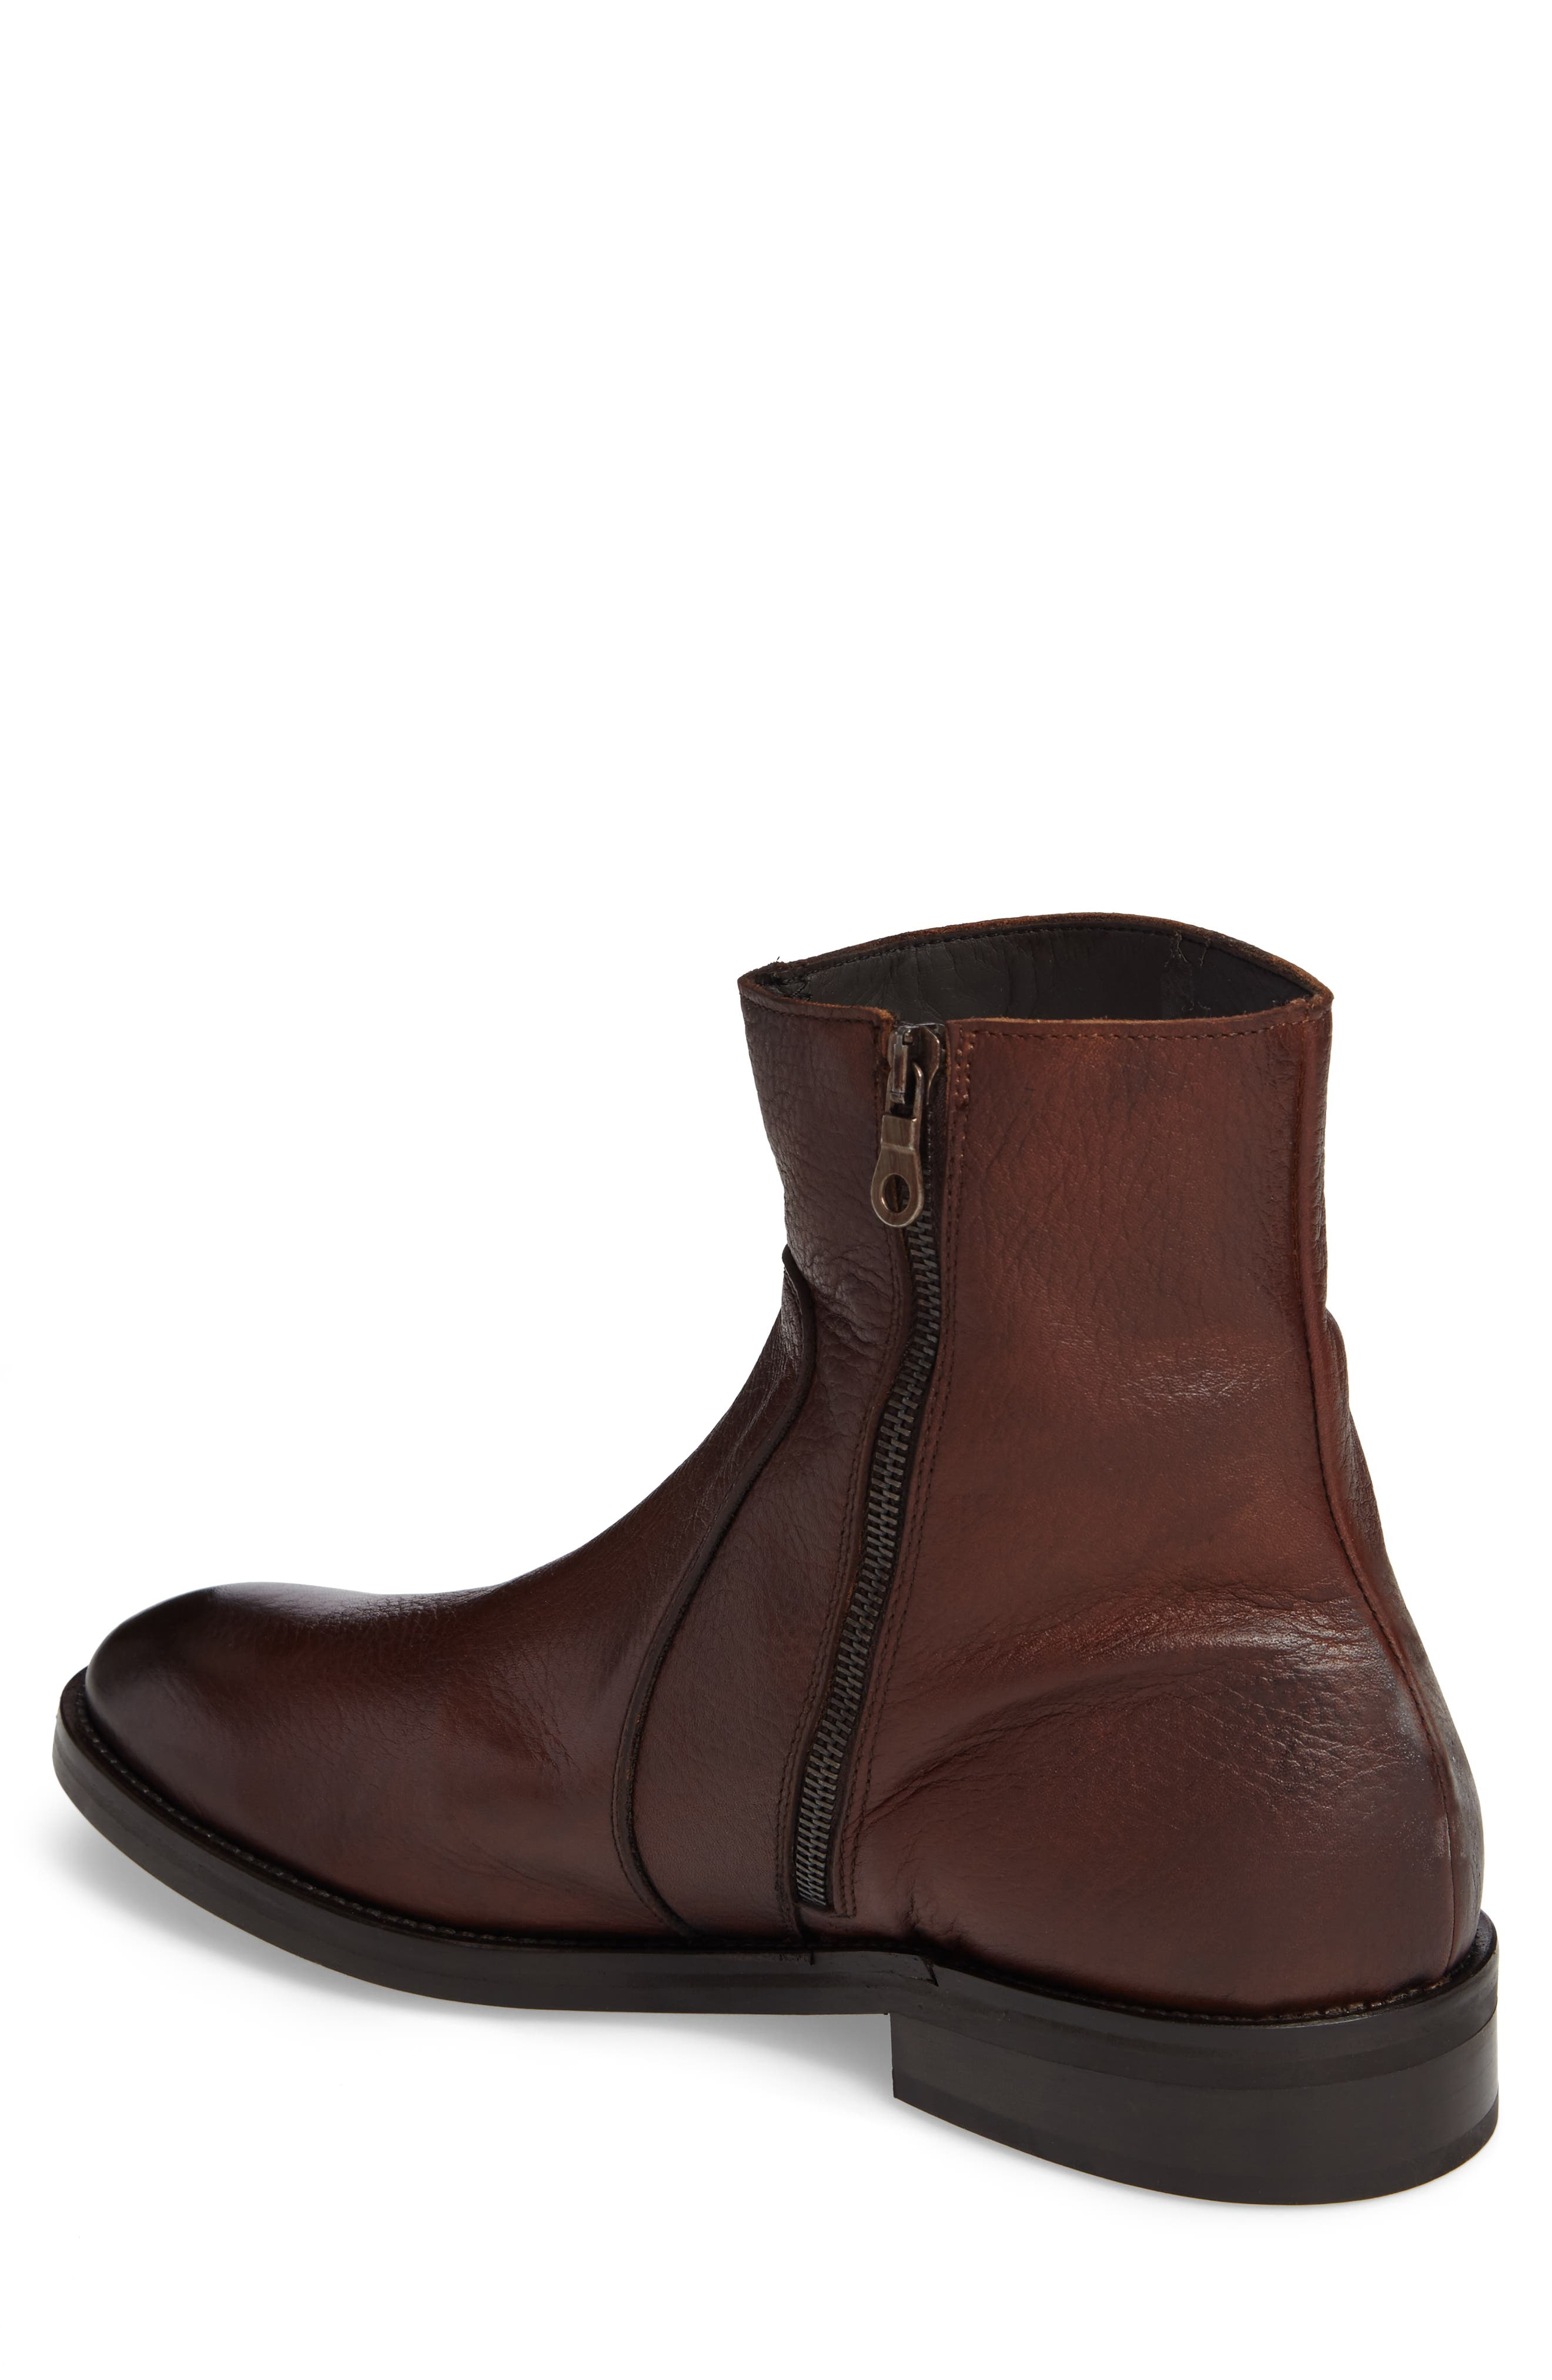 Commodore Zip Boot,                             Alternate thumbnail 4, color,